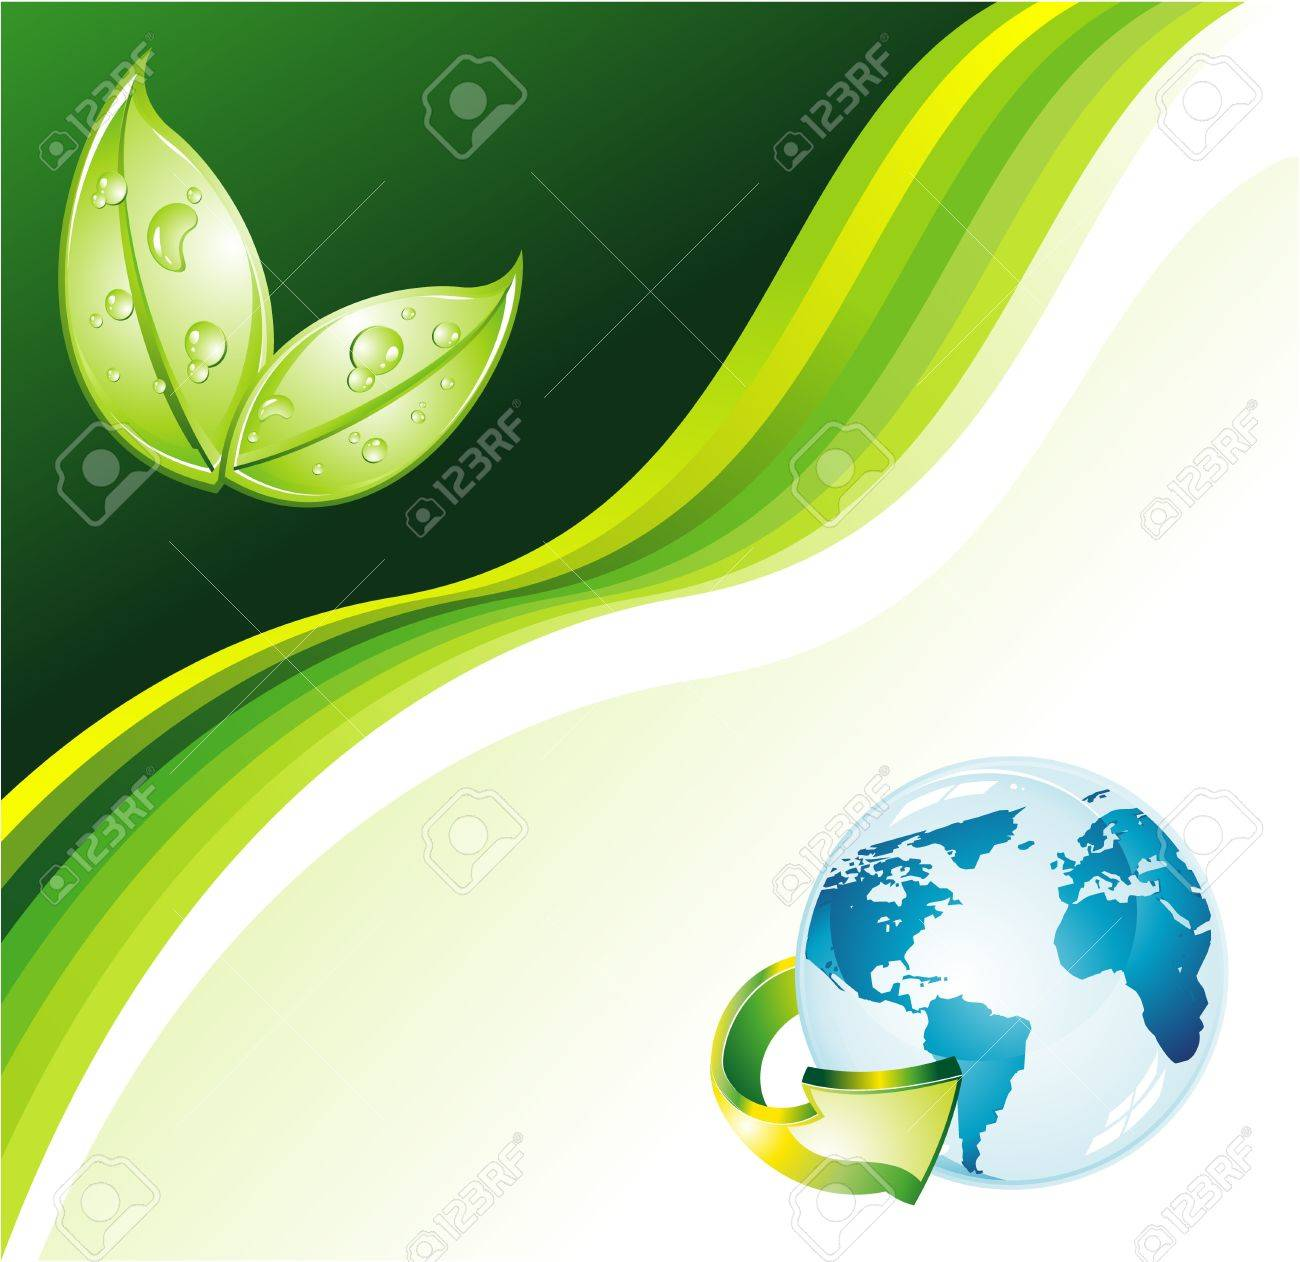 Environmental Earth Green Background for Flyers Stock Vector - 7719478